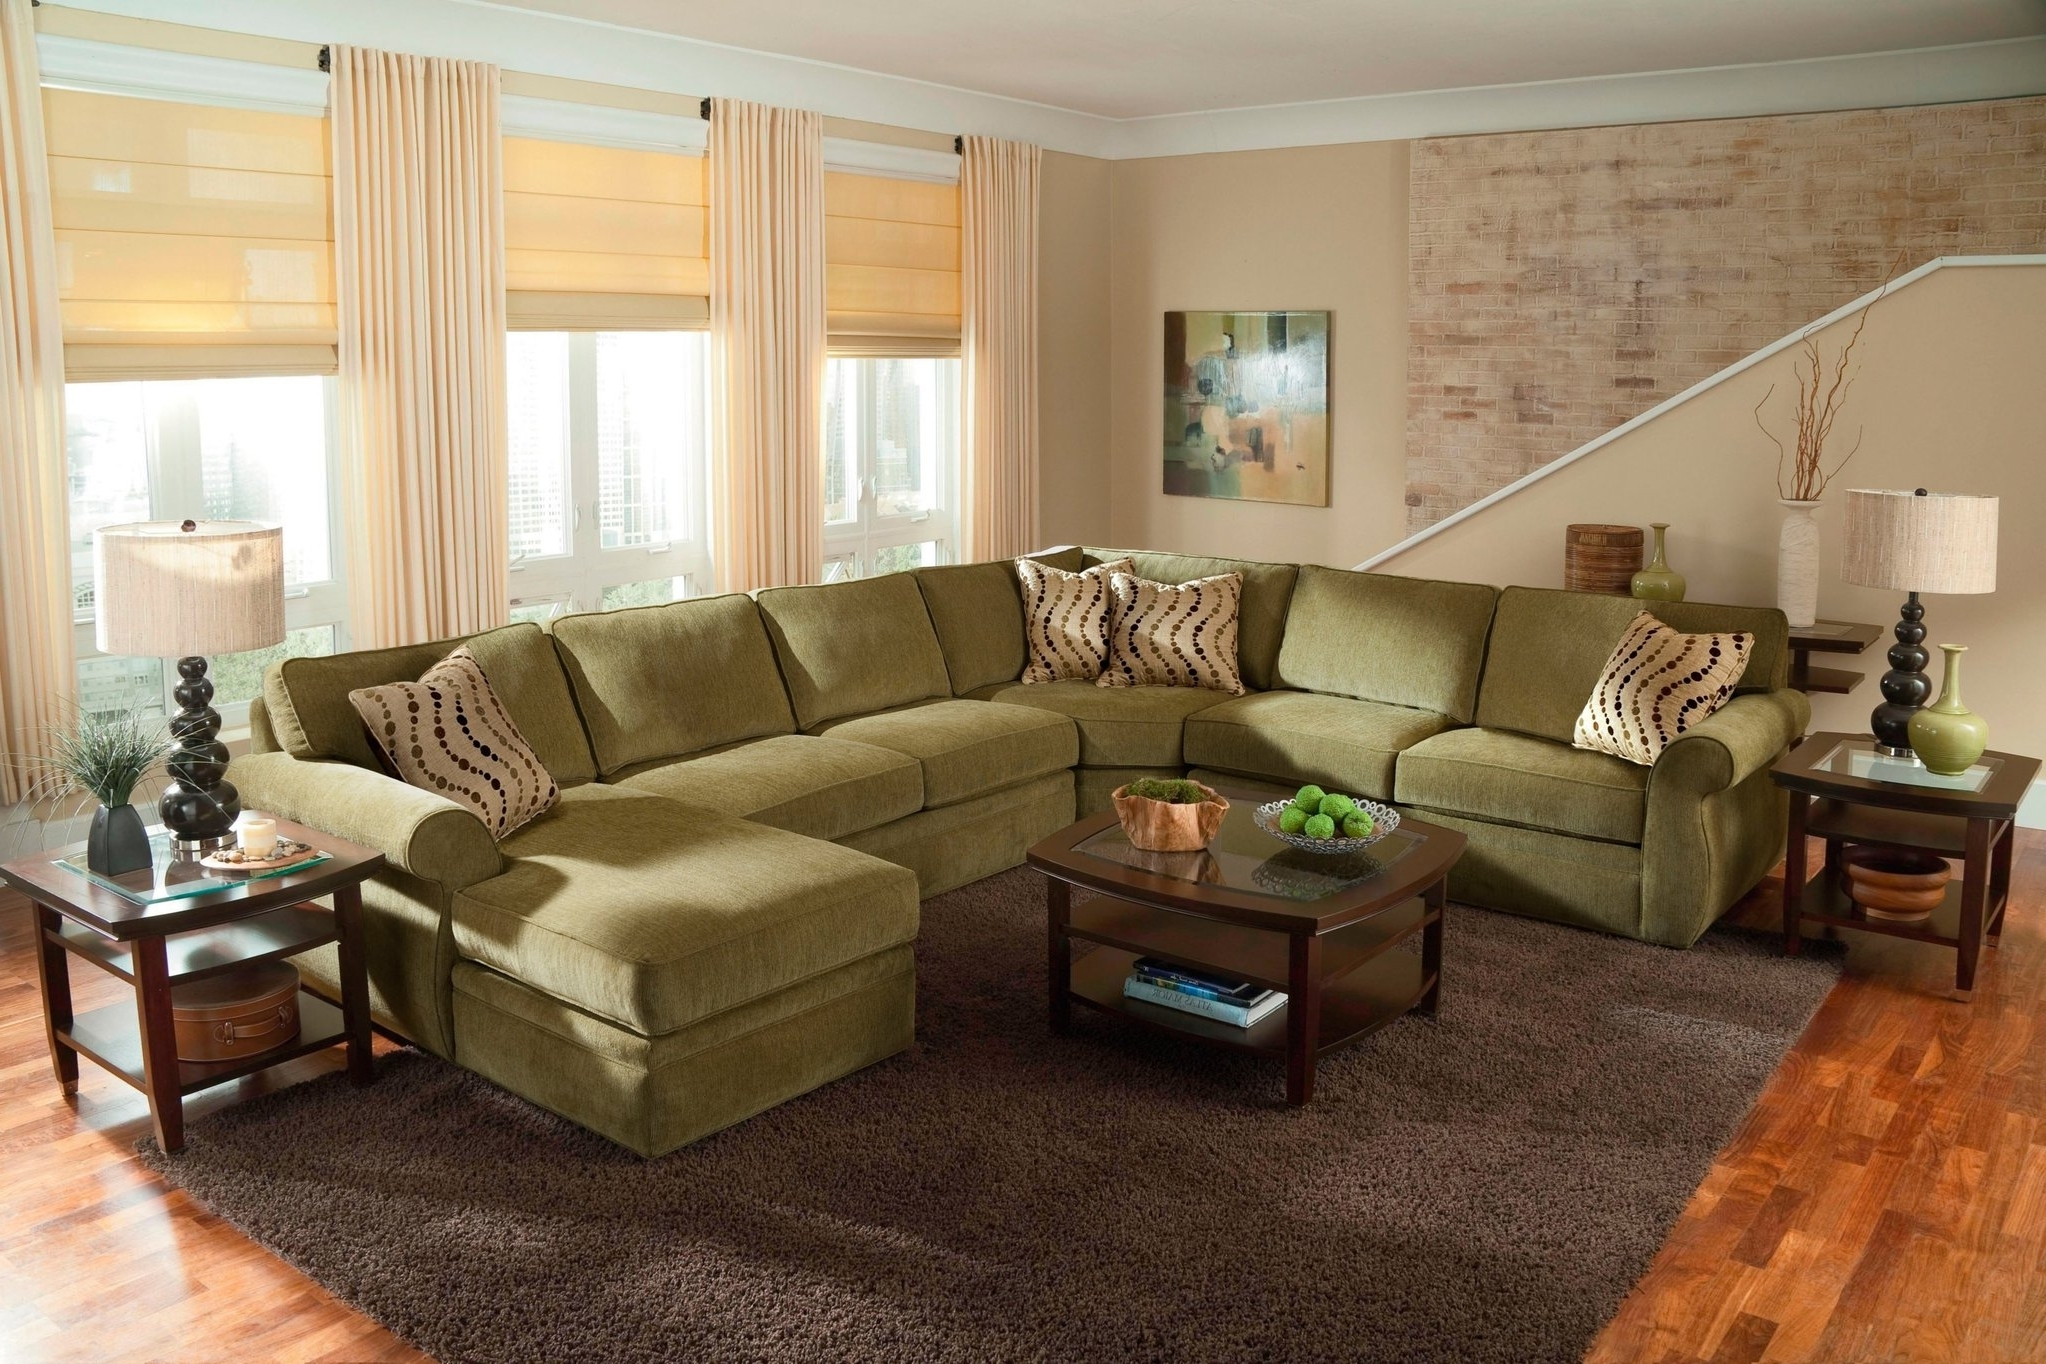 Large Comfortable Sectional Sofas Within Famous Large Scale U Shaped Sectional Sofa Set (View 19 of 20)